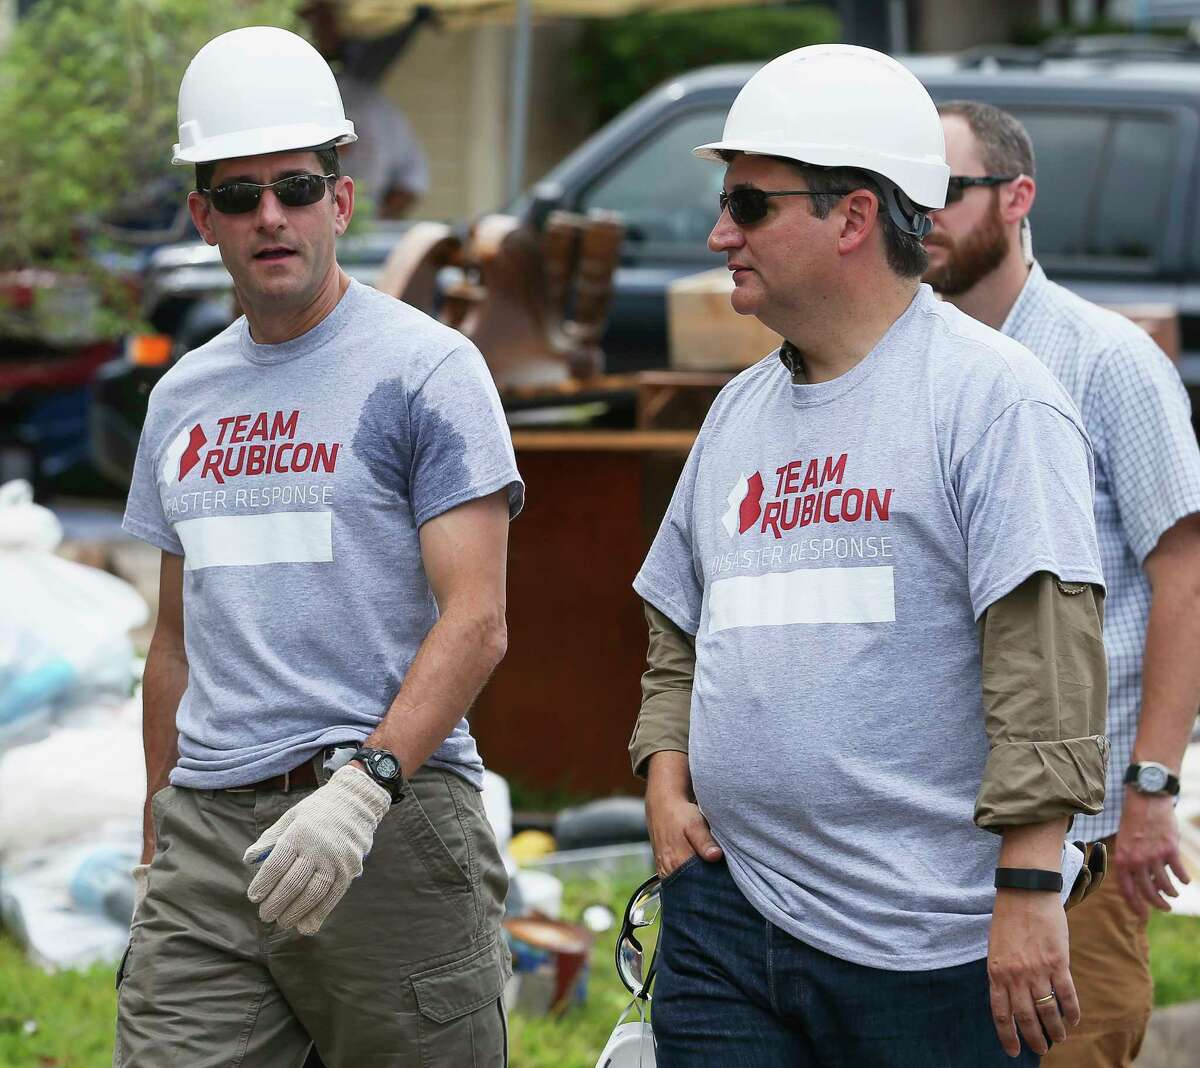 House Speaker Paul Ryan, from left, Sen. Ted Cruz, and a group of Congressional delegates arrive at the Garcia house on Lucian Lane to assist Team Rubicon Disaster Response to clean out the Garcias' Harvey-damaged house Thursday, Sept. 21, 2017, in Friendswood. Team Rubicon is a non-profit organization that pairs military veterans with first responders to deploy emergency response teams. ( Yi-Chin Lee/Houston Chronicle via AP)